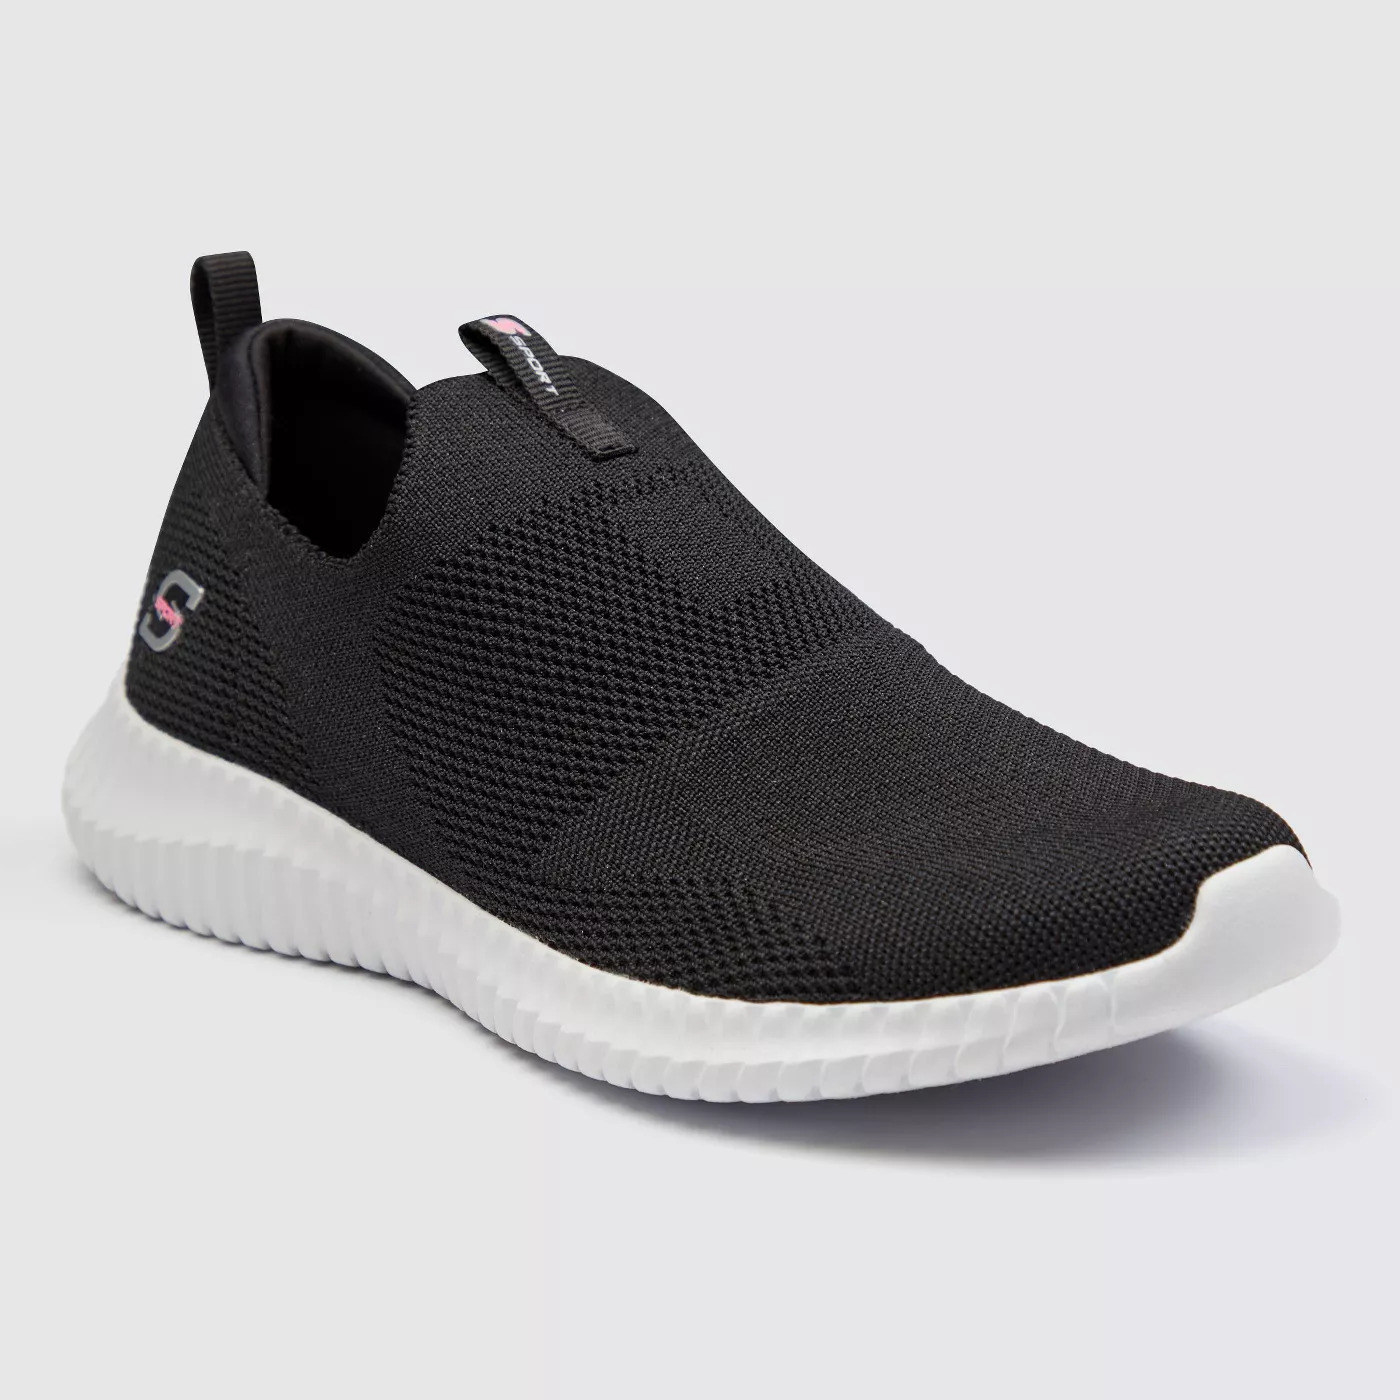 black laceless sneakers with white rubber soles